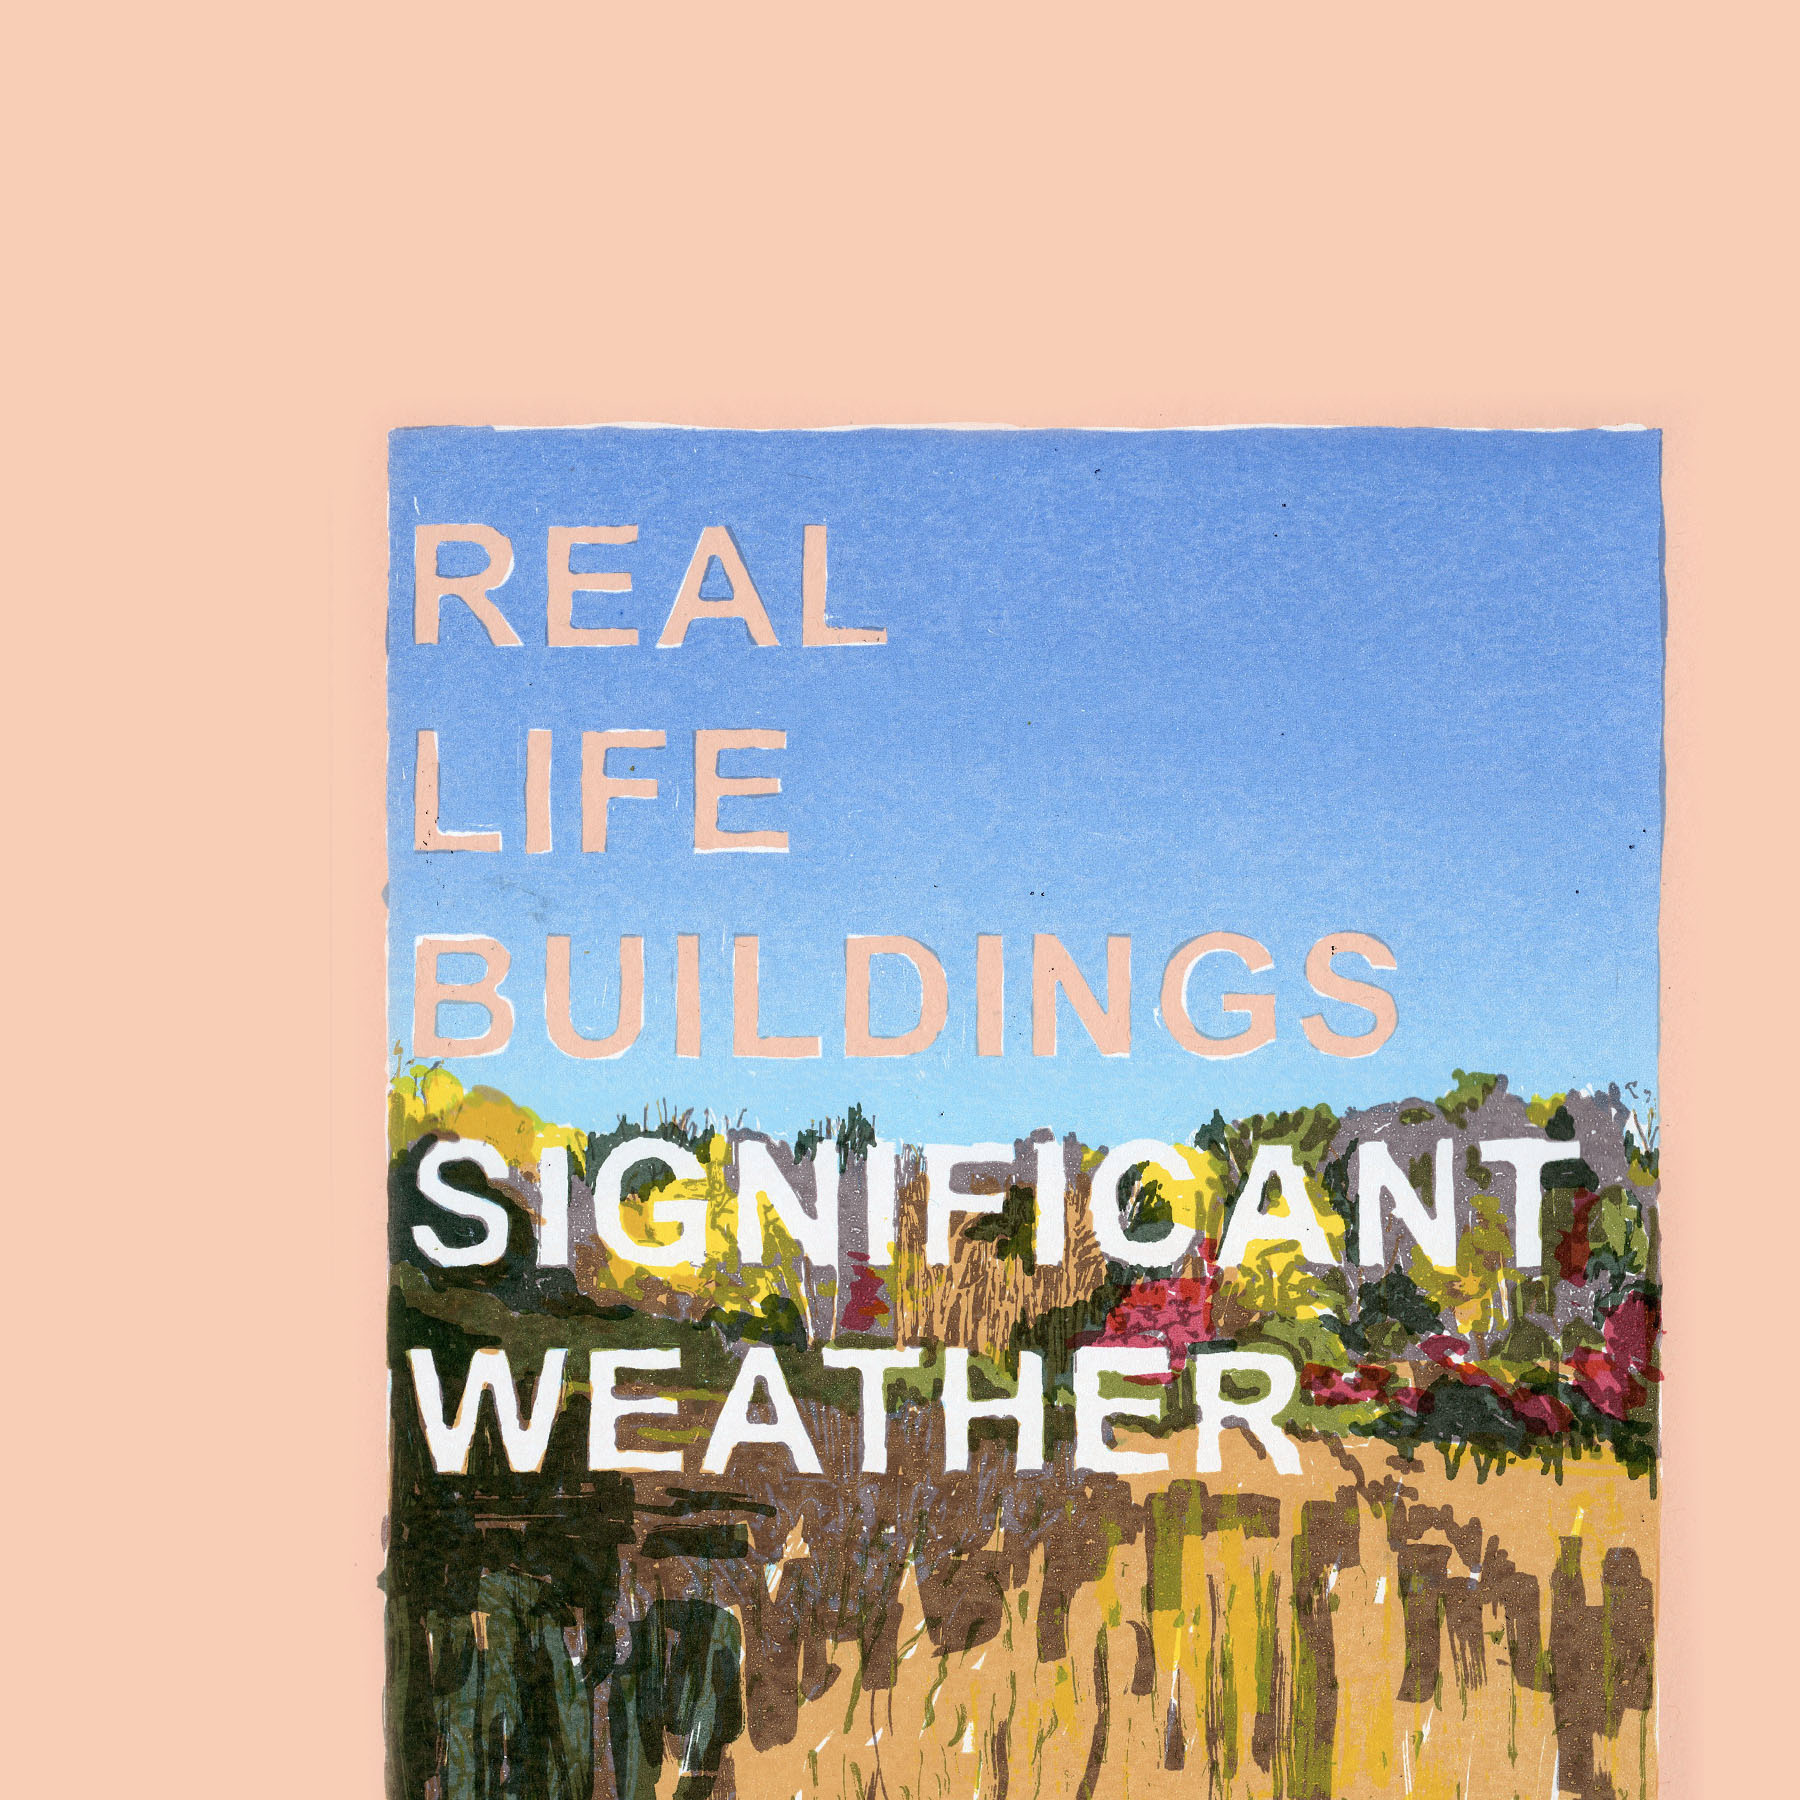 Real Life Buildings - Significant Weather Limited Edition LP